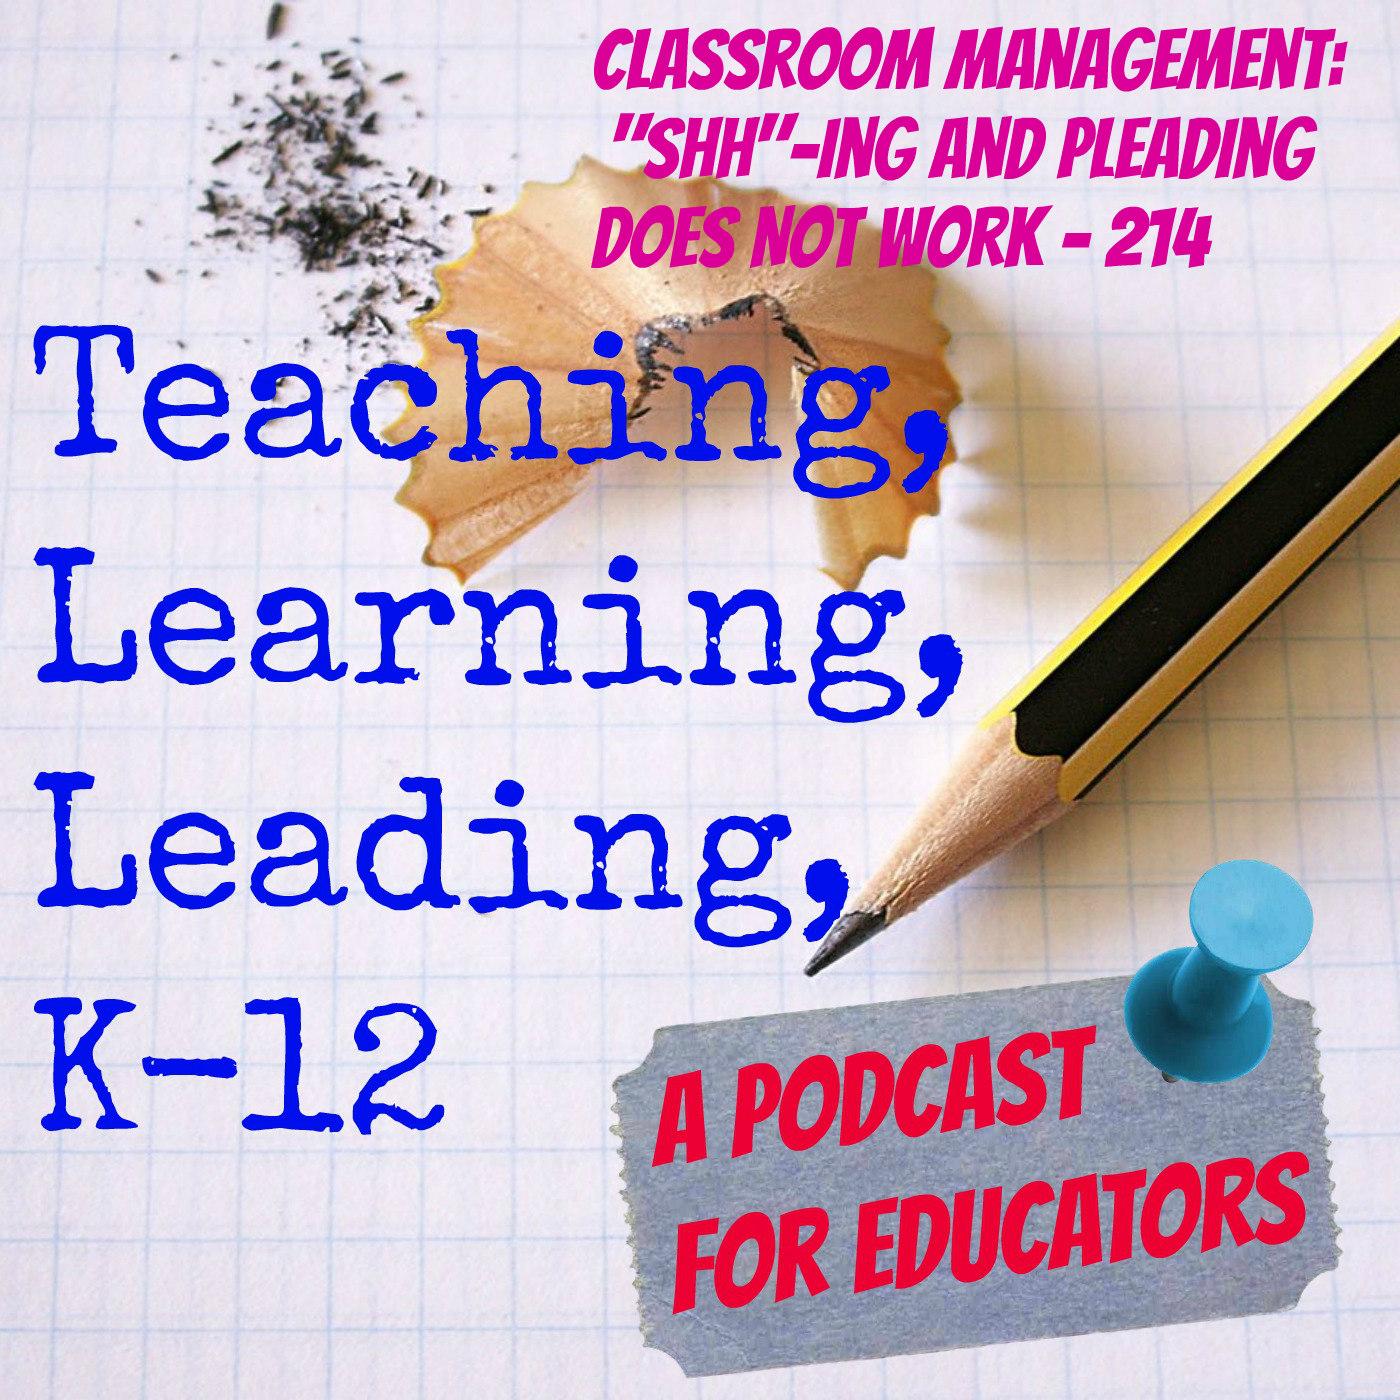 Classroom Management: Shh-ing and Pleading Does Not Work - 214